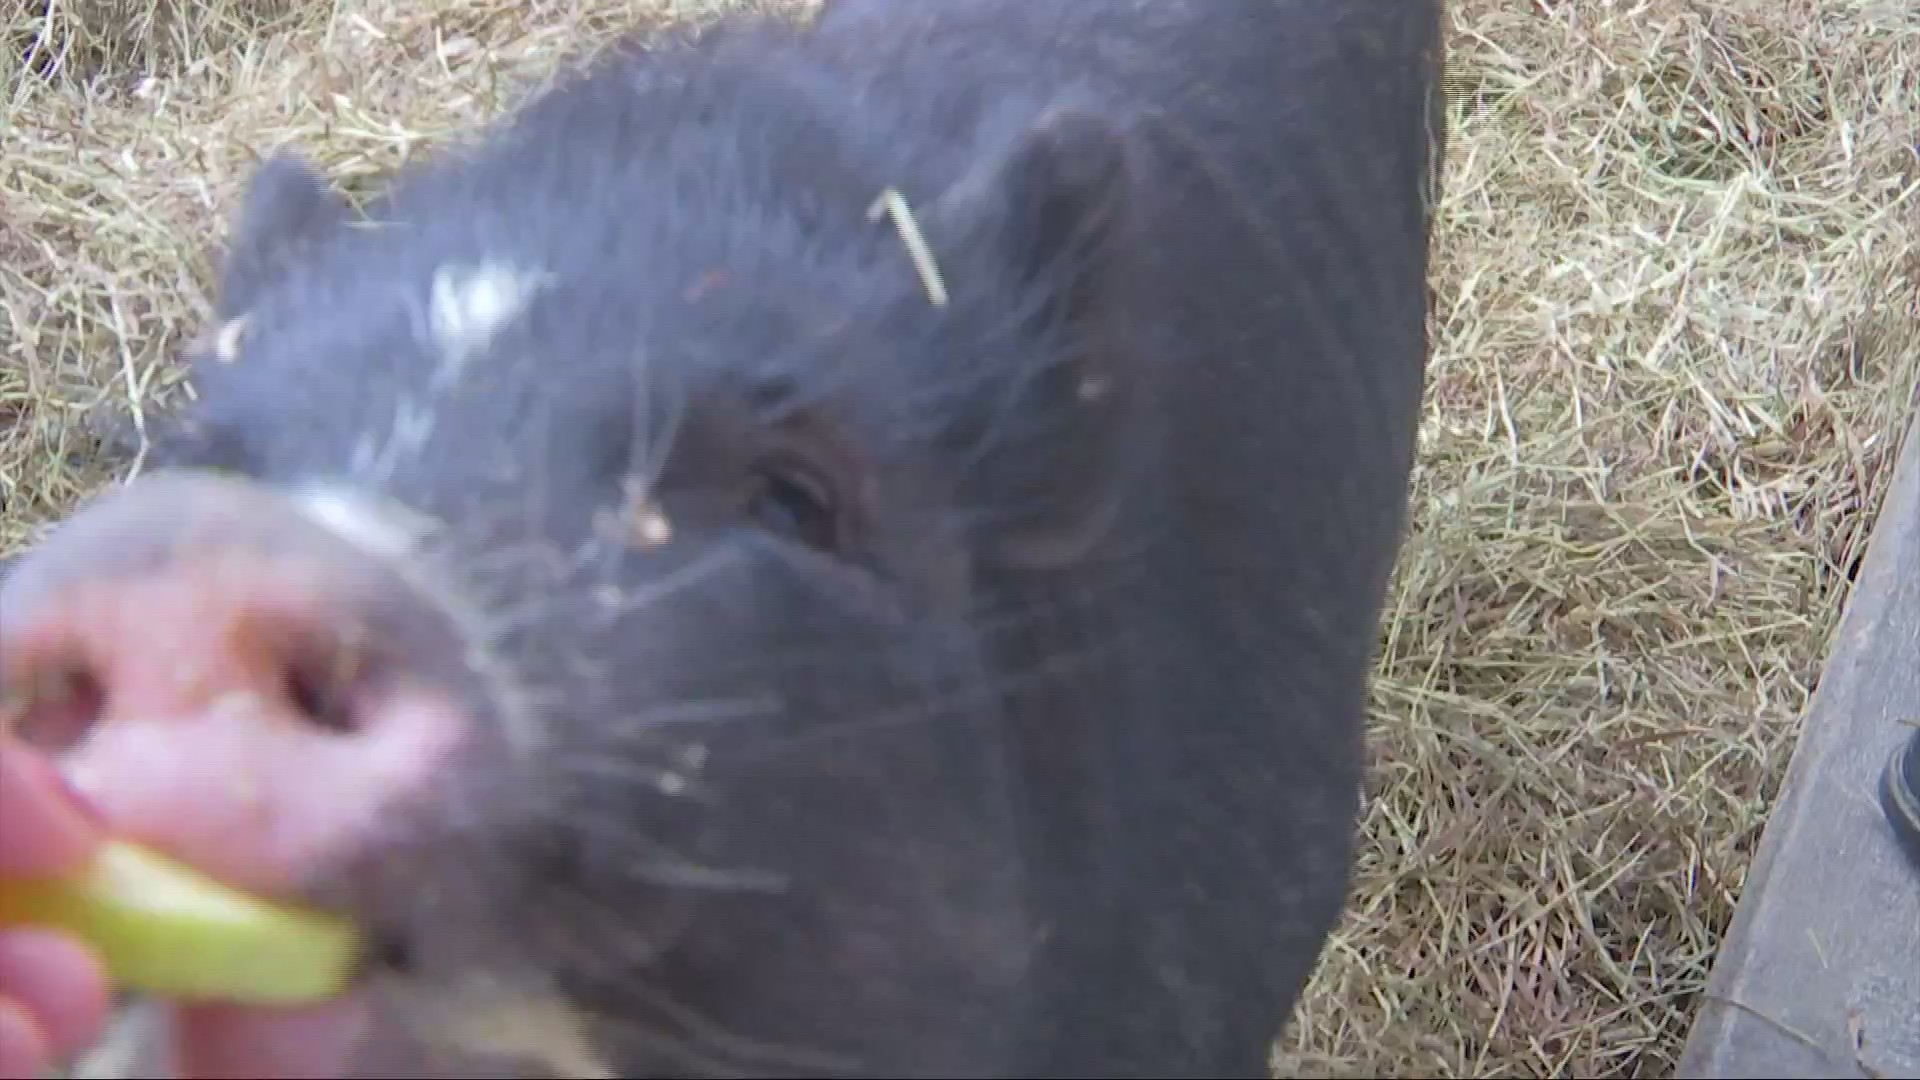 St. Albans Hosts First Ever PigPig Festival